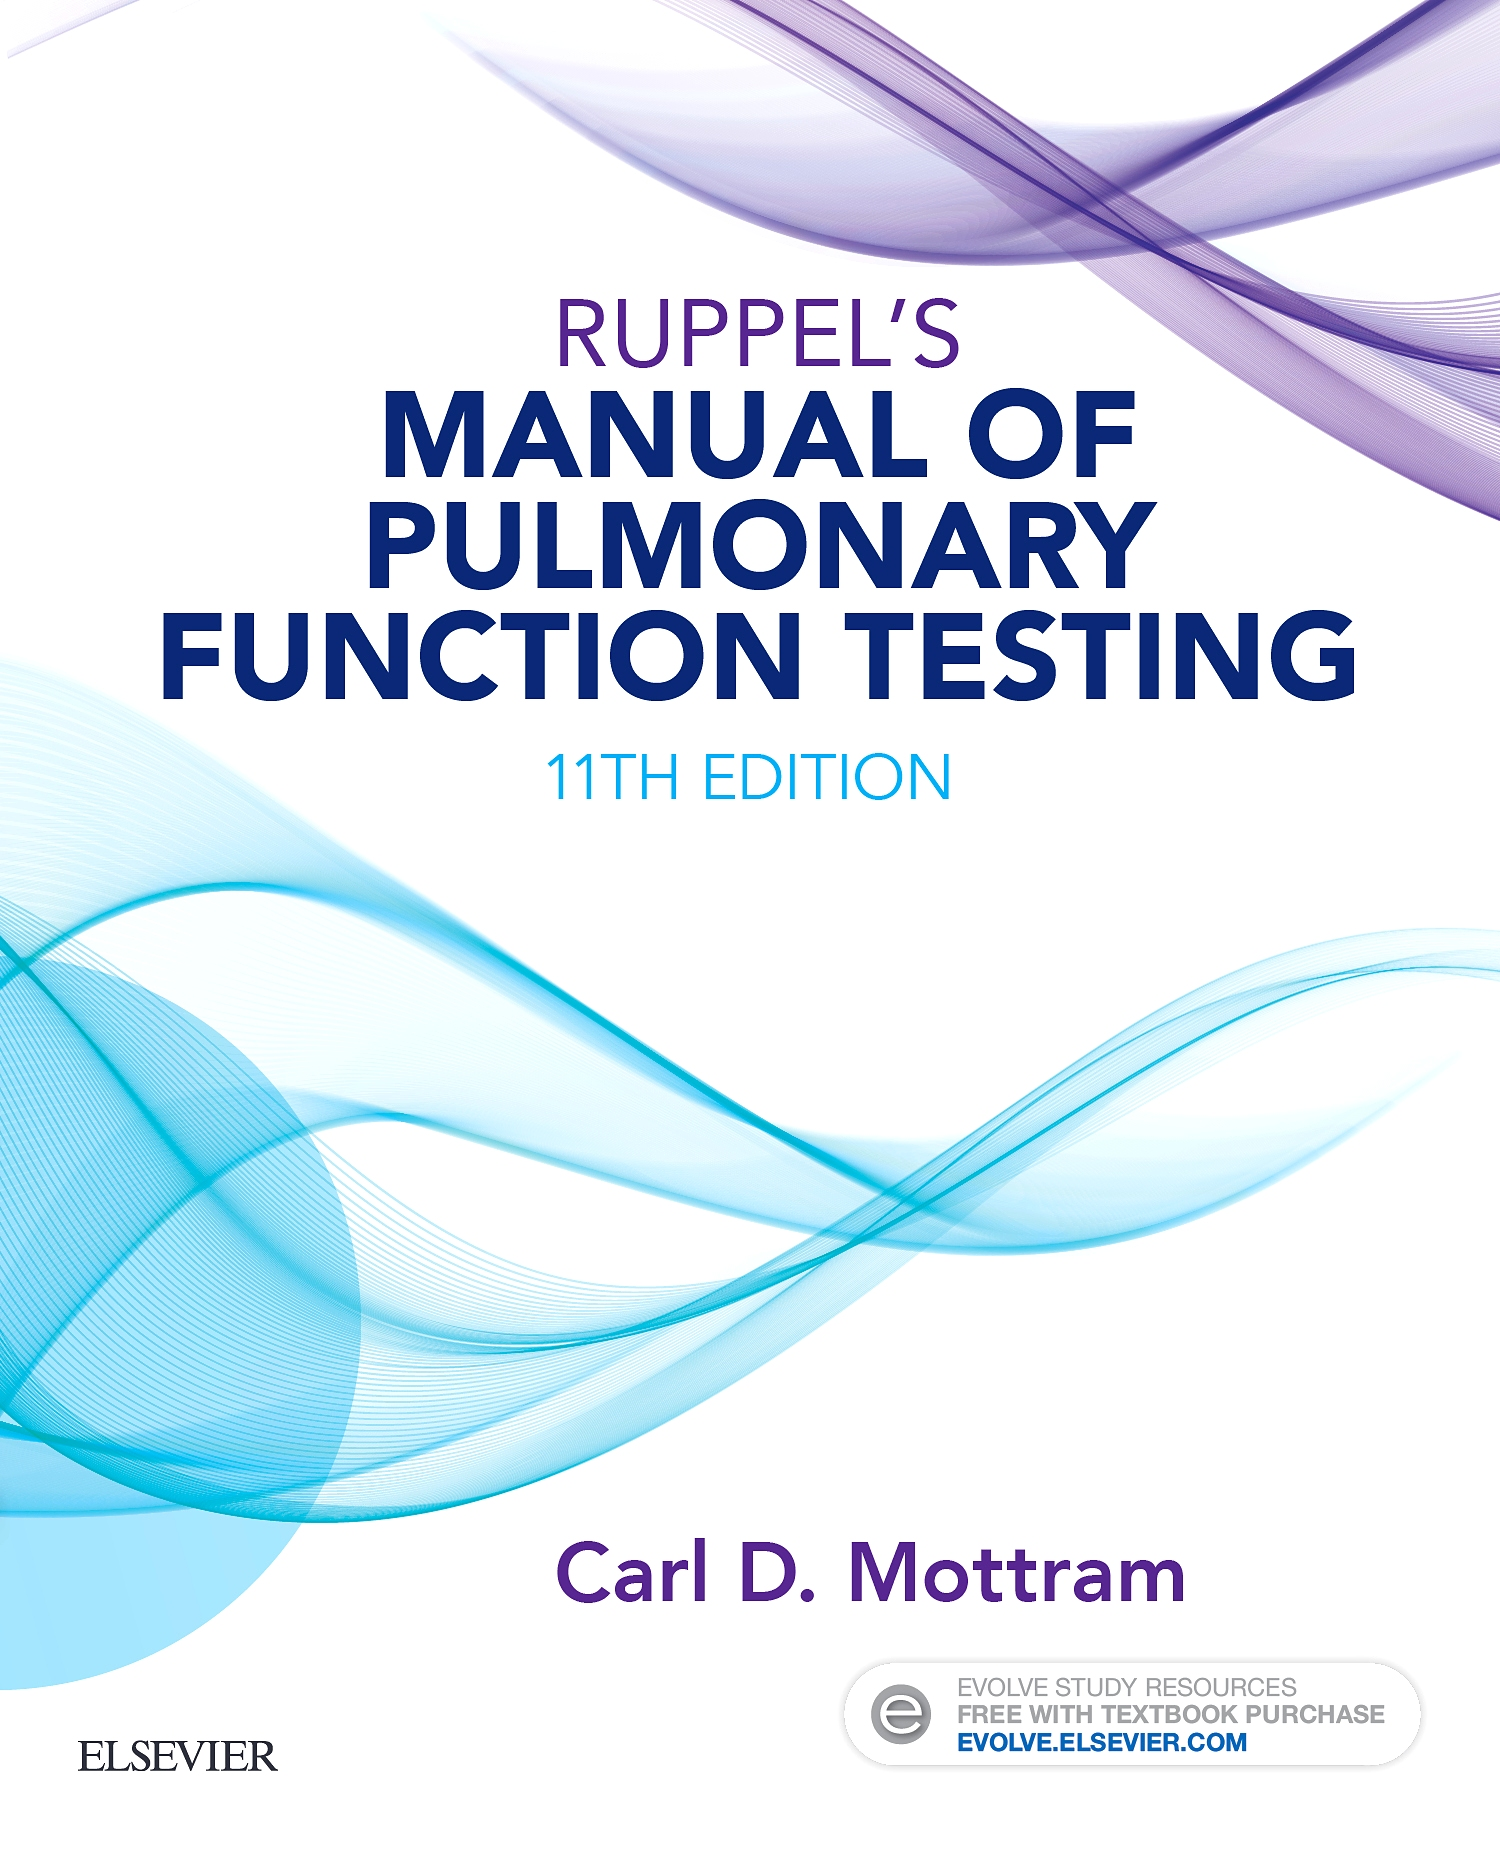 Evolve Resources for Ruppel's Manual of Pulmonary Function Testing, 11th Edition